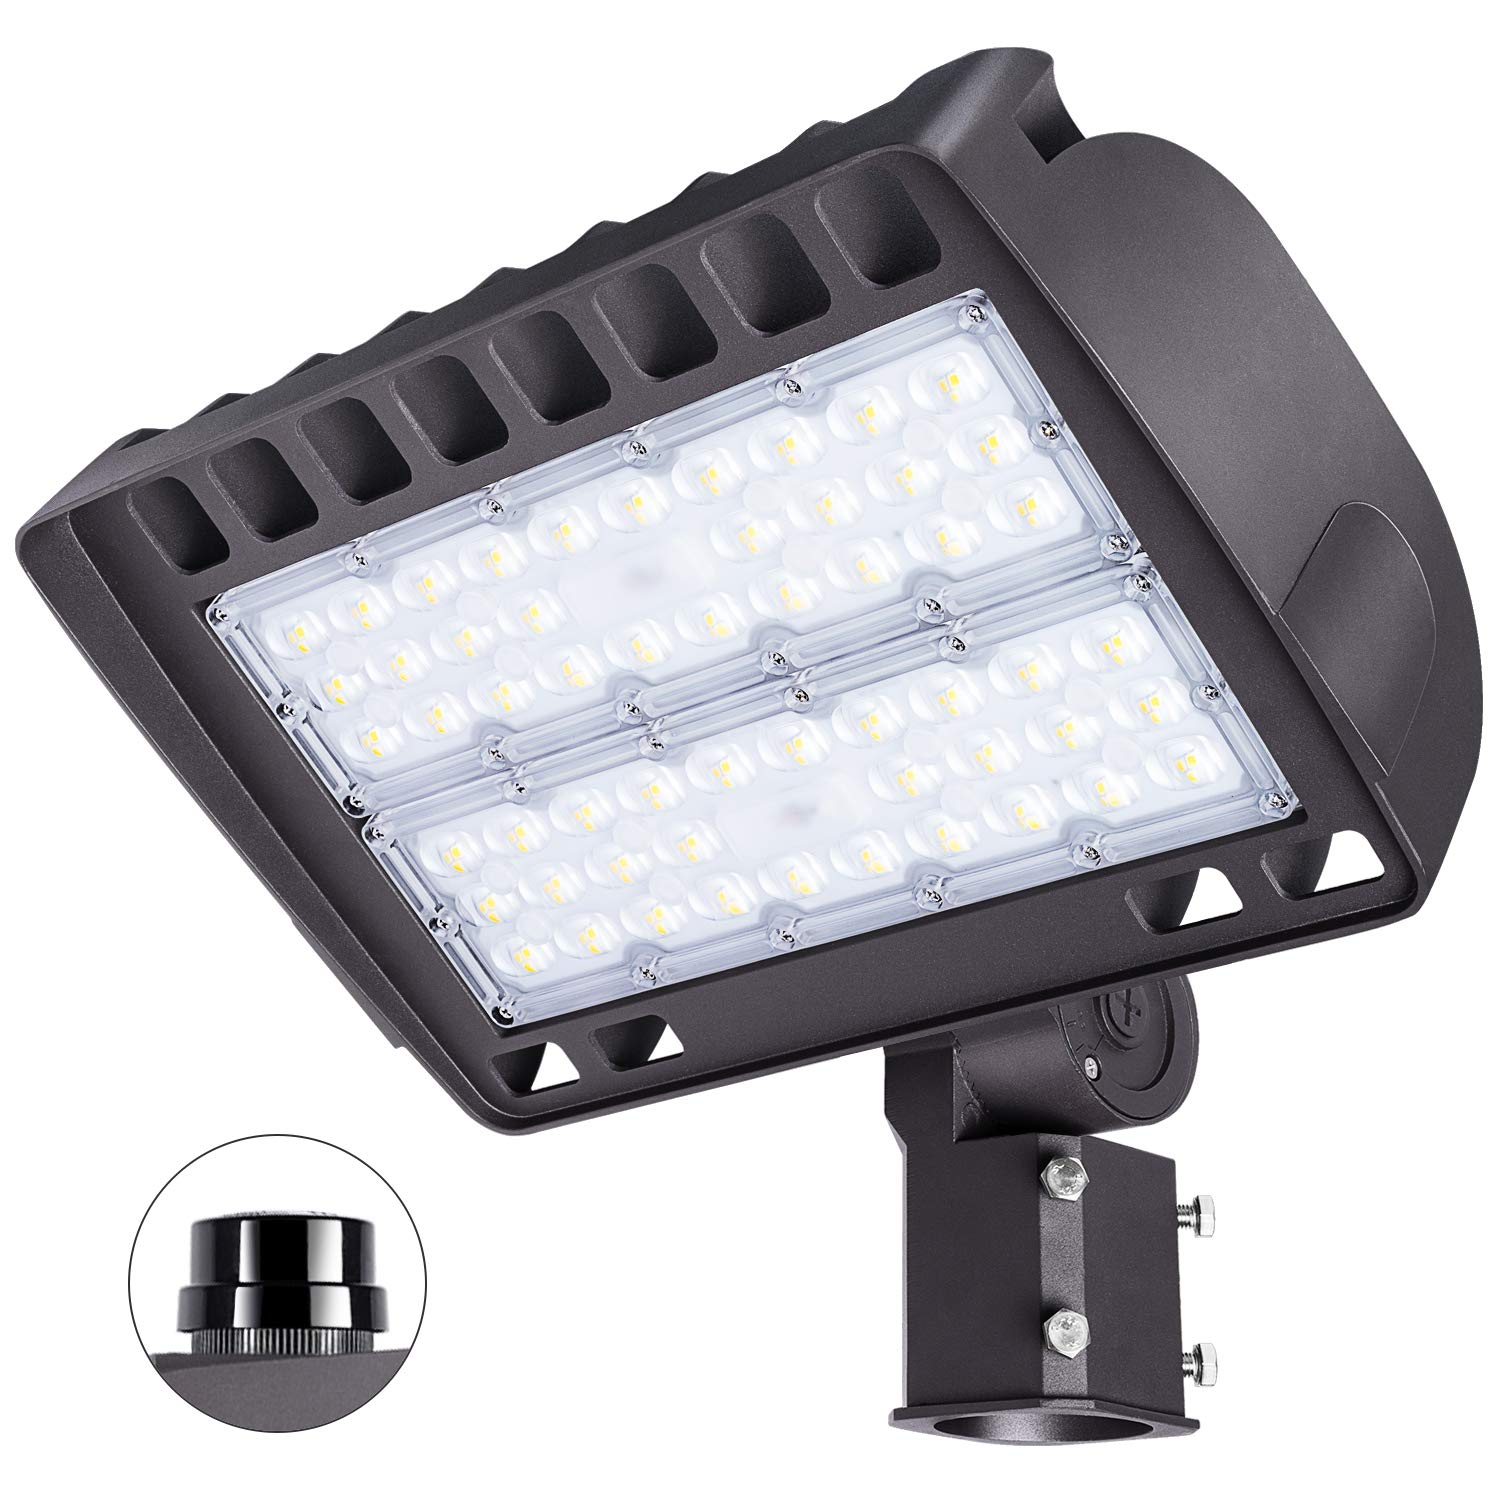 FaithSail 150W LED Parking Lot Lighting Outdoor Shoebox Pole Lights, 19000LM, 5700K, 450W MH/HPS Replacement, Ultra Bright Commercial Area Street Shoe Box Flood Parking Lot Lighting, Slip Fitter Mount